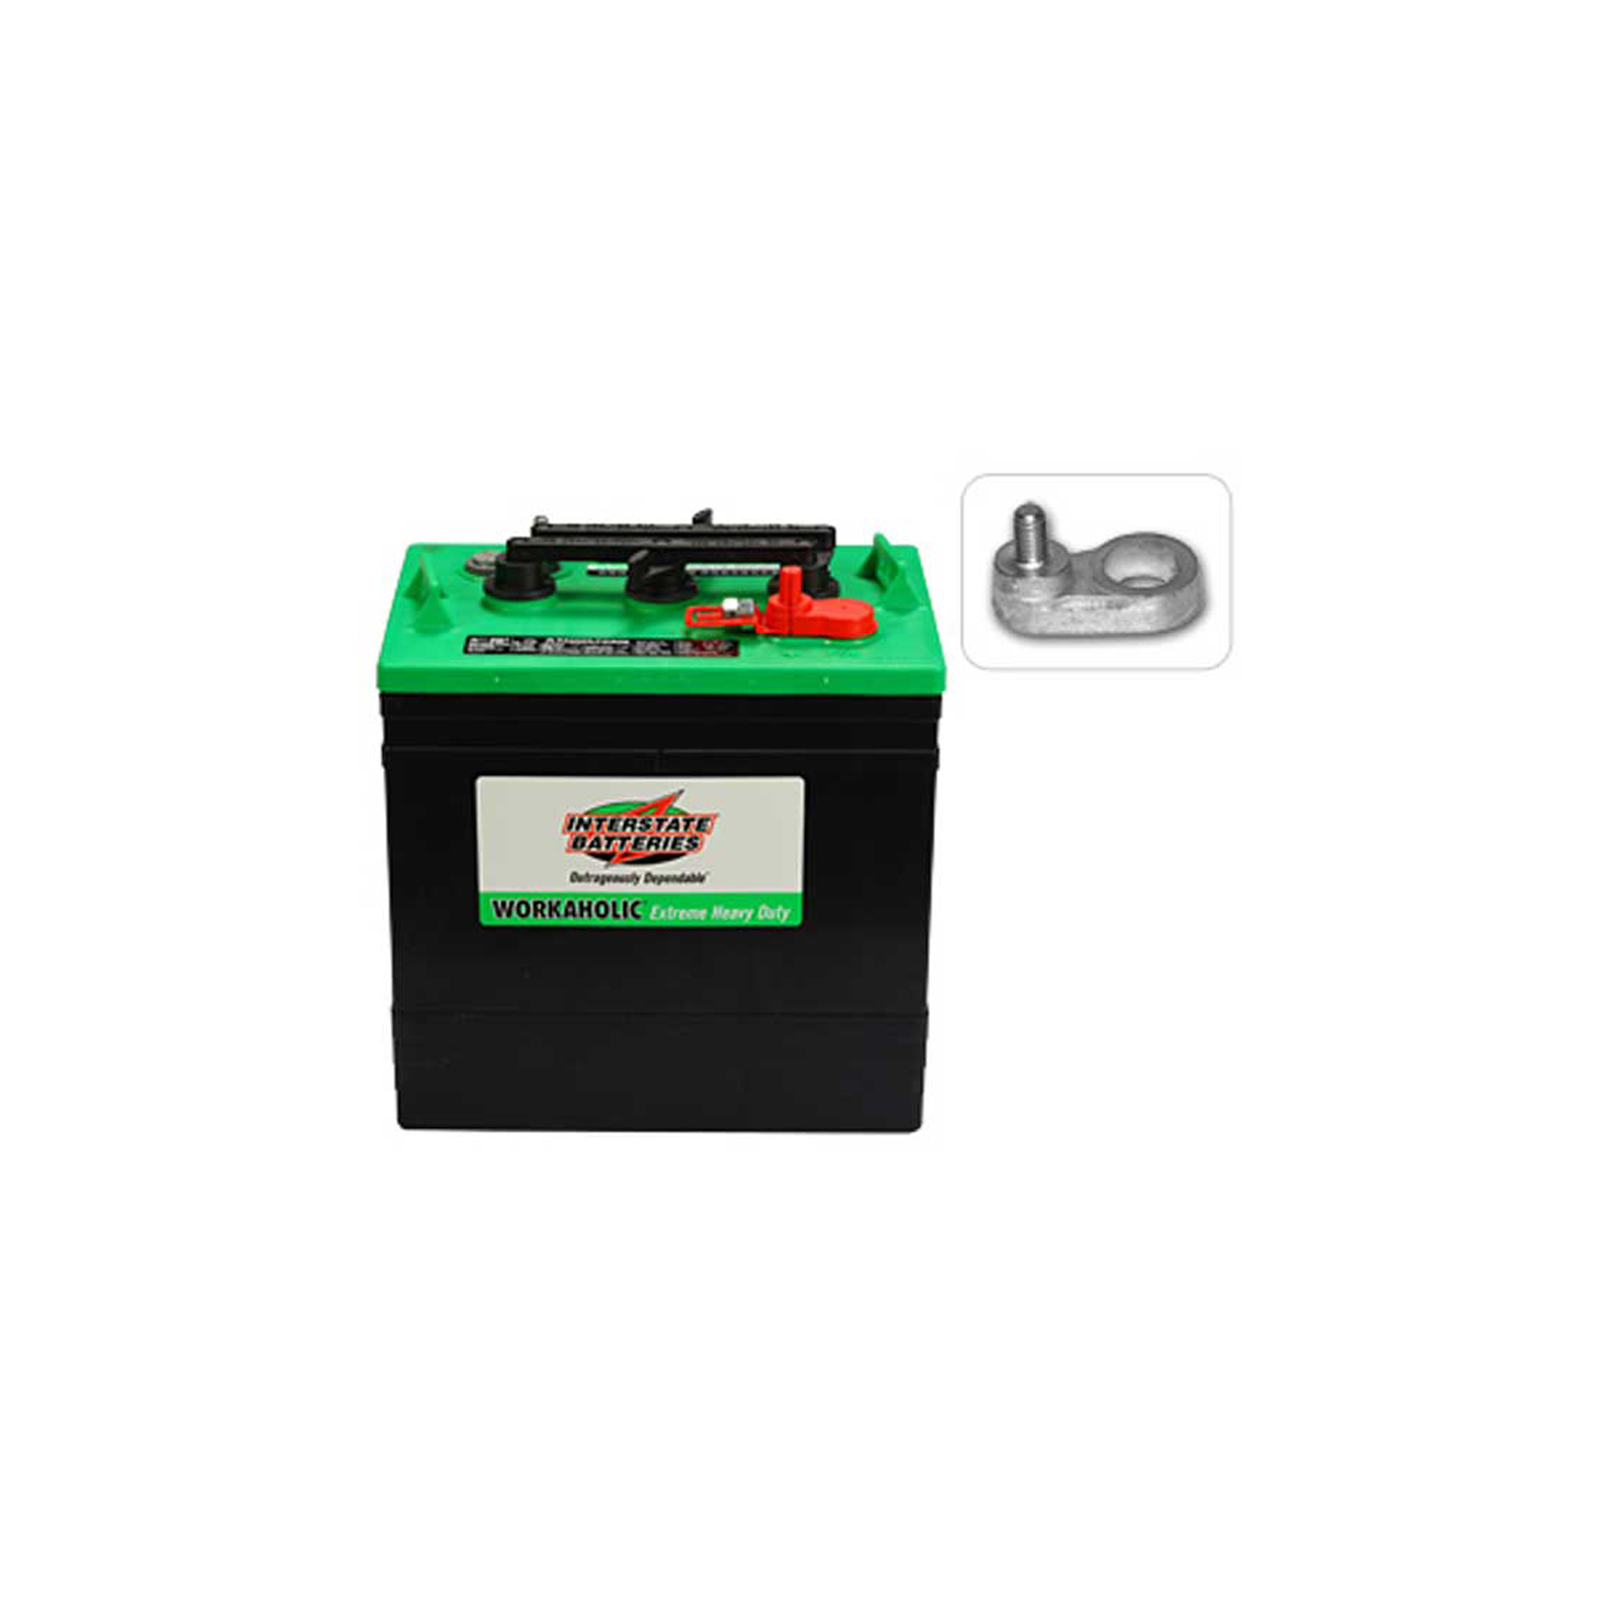 6v 232ah deep cycle battery interstate gc2 xhd wet cell for golf carts ebay. Black Bedroom Furniture Sets. Home Design Ideas